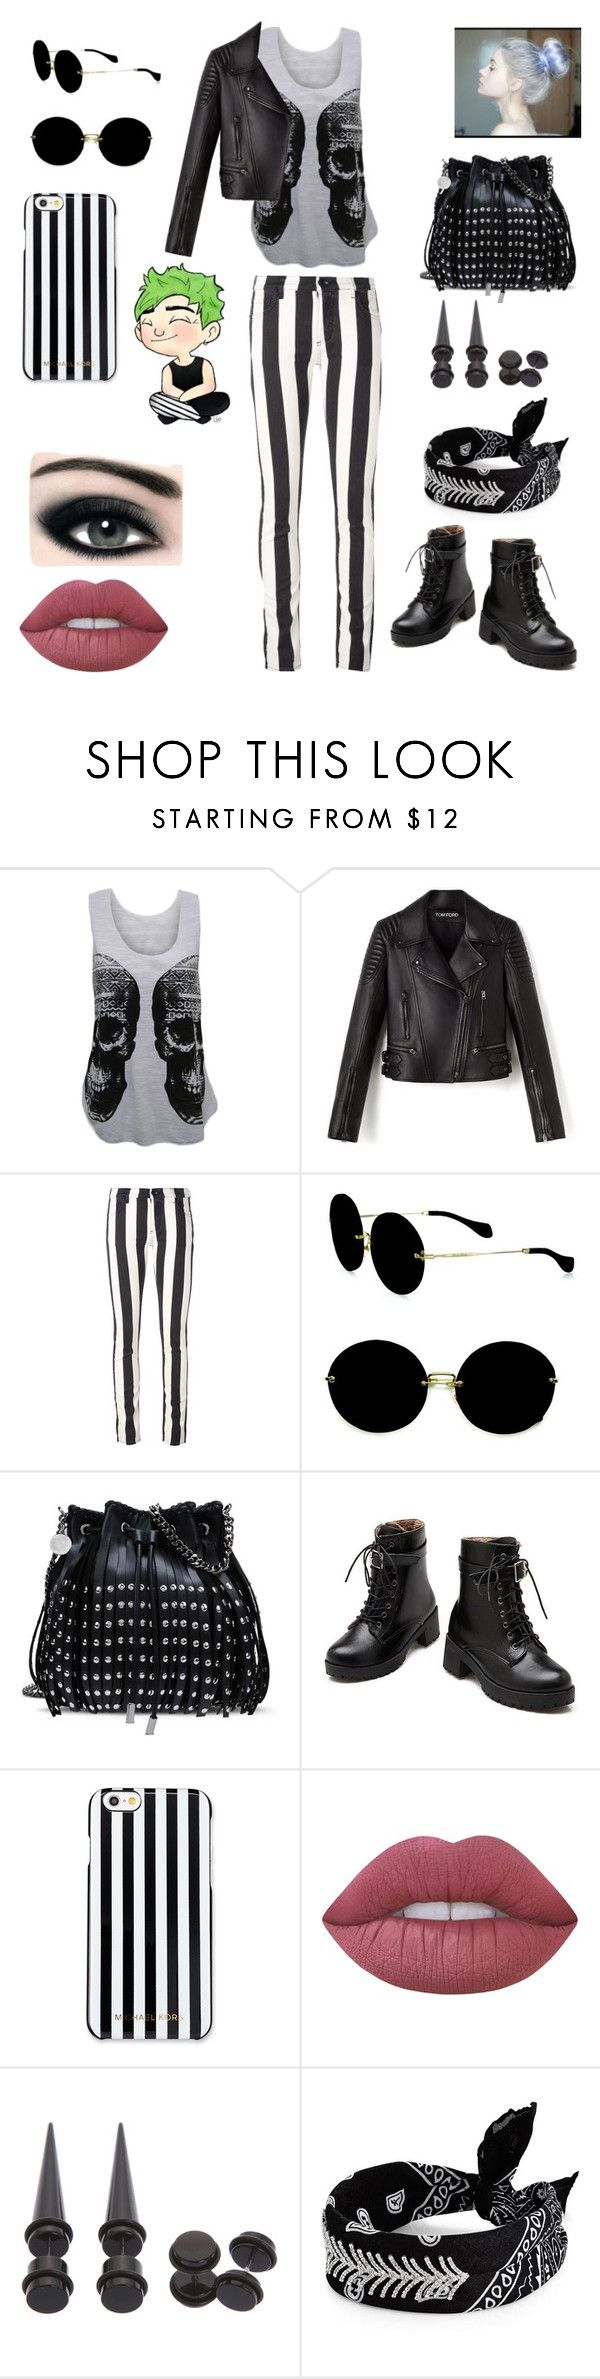 """""""how I met mikey clifford"""" by soslover666 ❤ liked on Polyvore featuring WearAll, Off-White, Miu Miu, STELLA McCARTNEY, MICHAEL Michael Kors, Lime Crime, Max Factor and Fallon"""